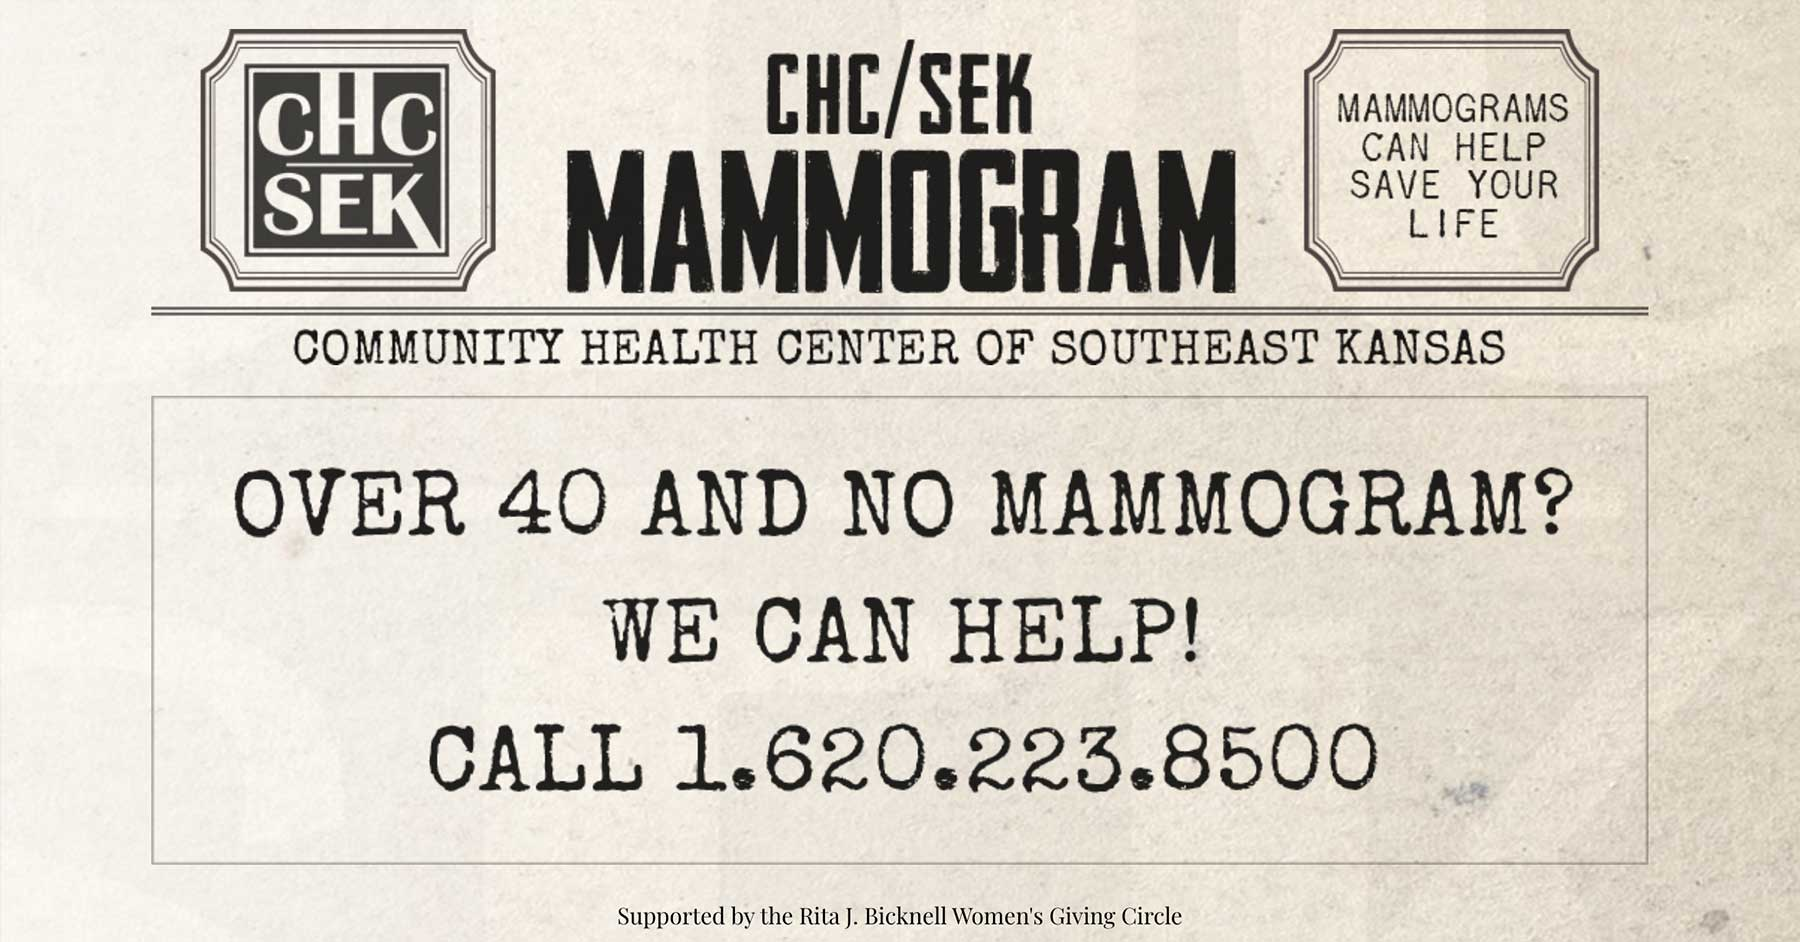 Over 40 and no mammogram? We can help! Call 1-620-223-8500.